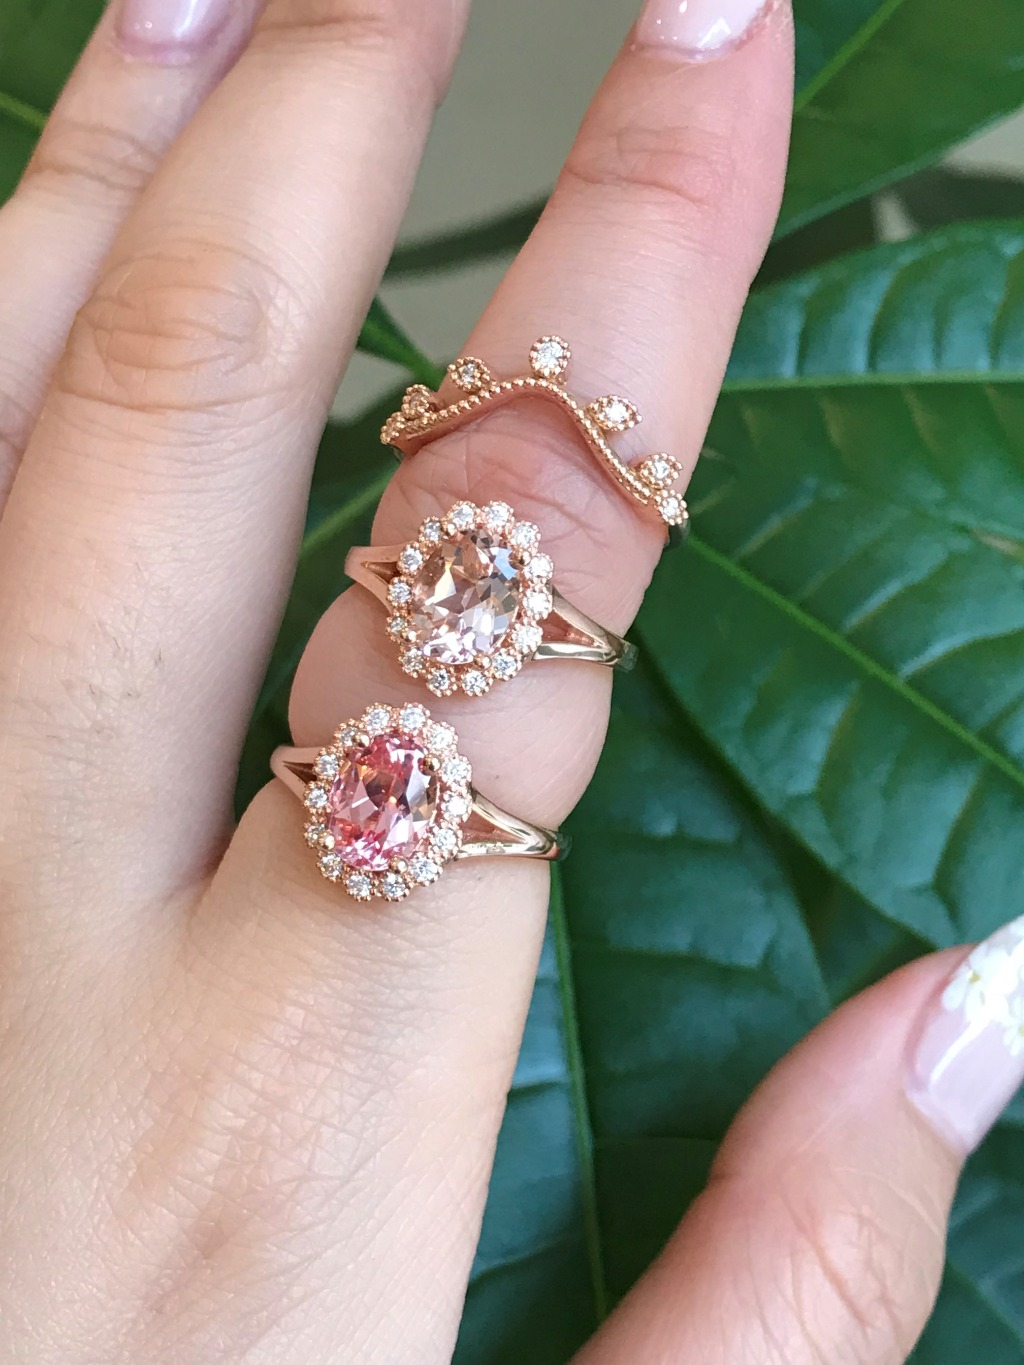 Oval Peach Sapphire on top, Oval Morganite below, both in Vintage Luna Halo design and split shank bands in Rose gold! Which is your